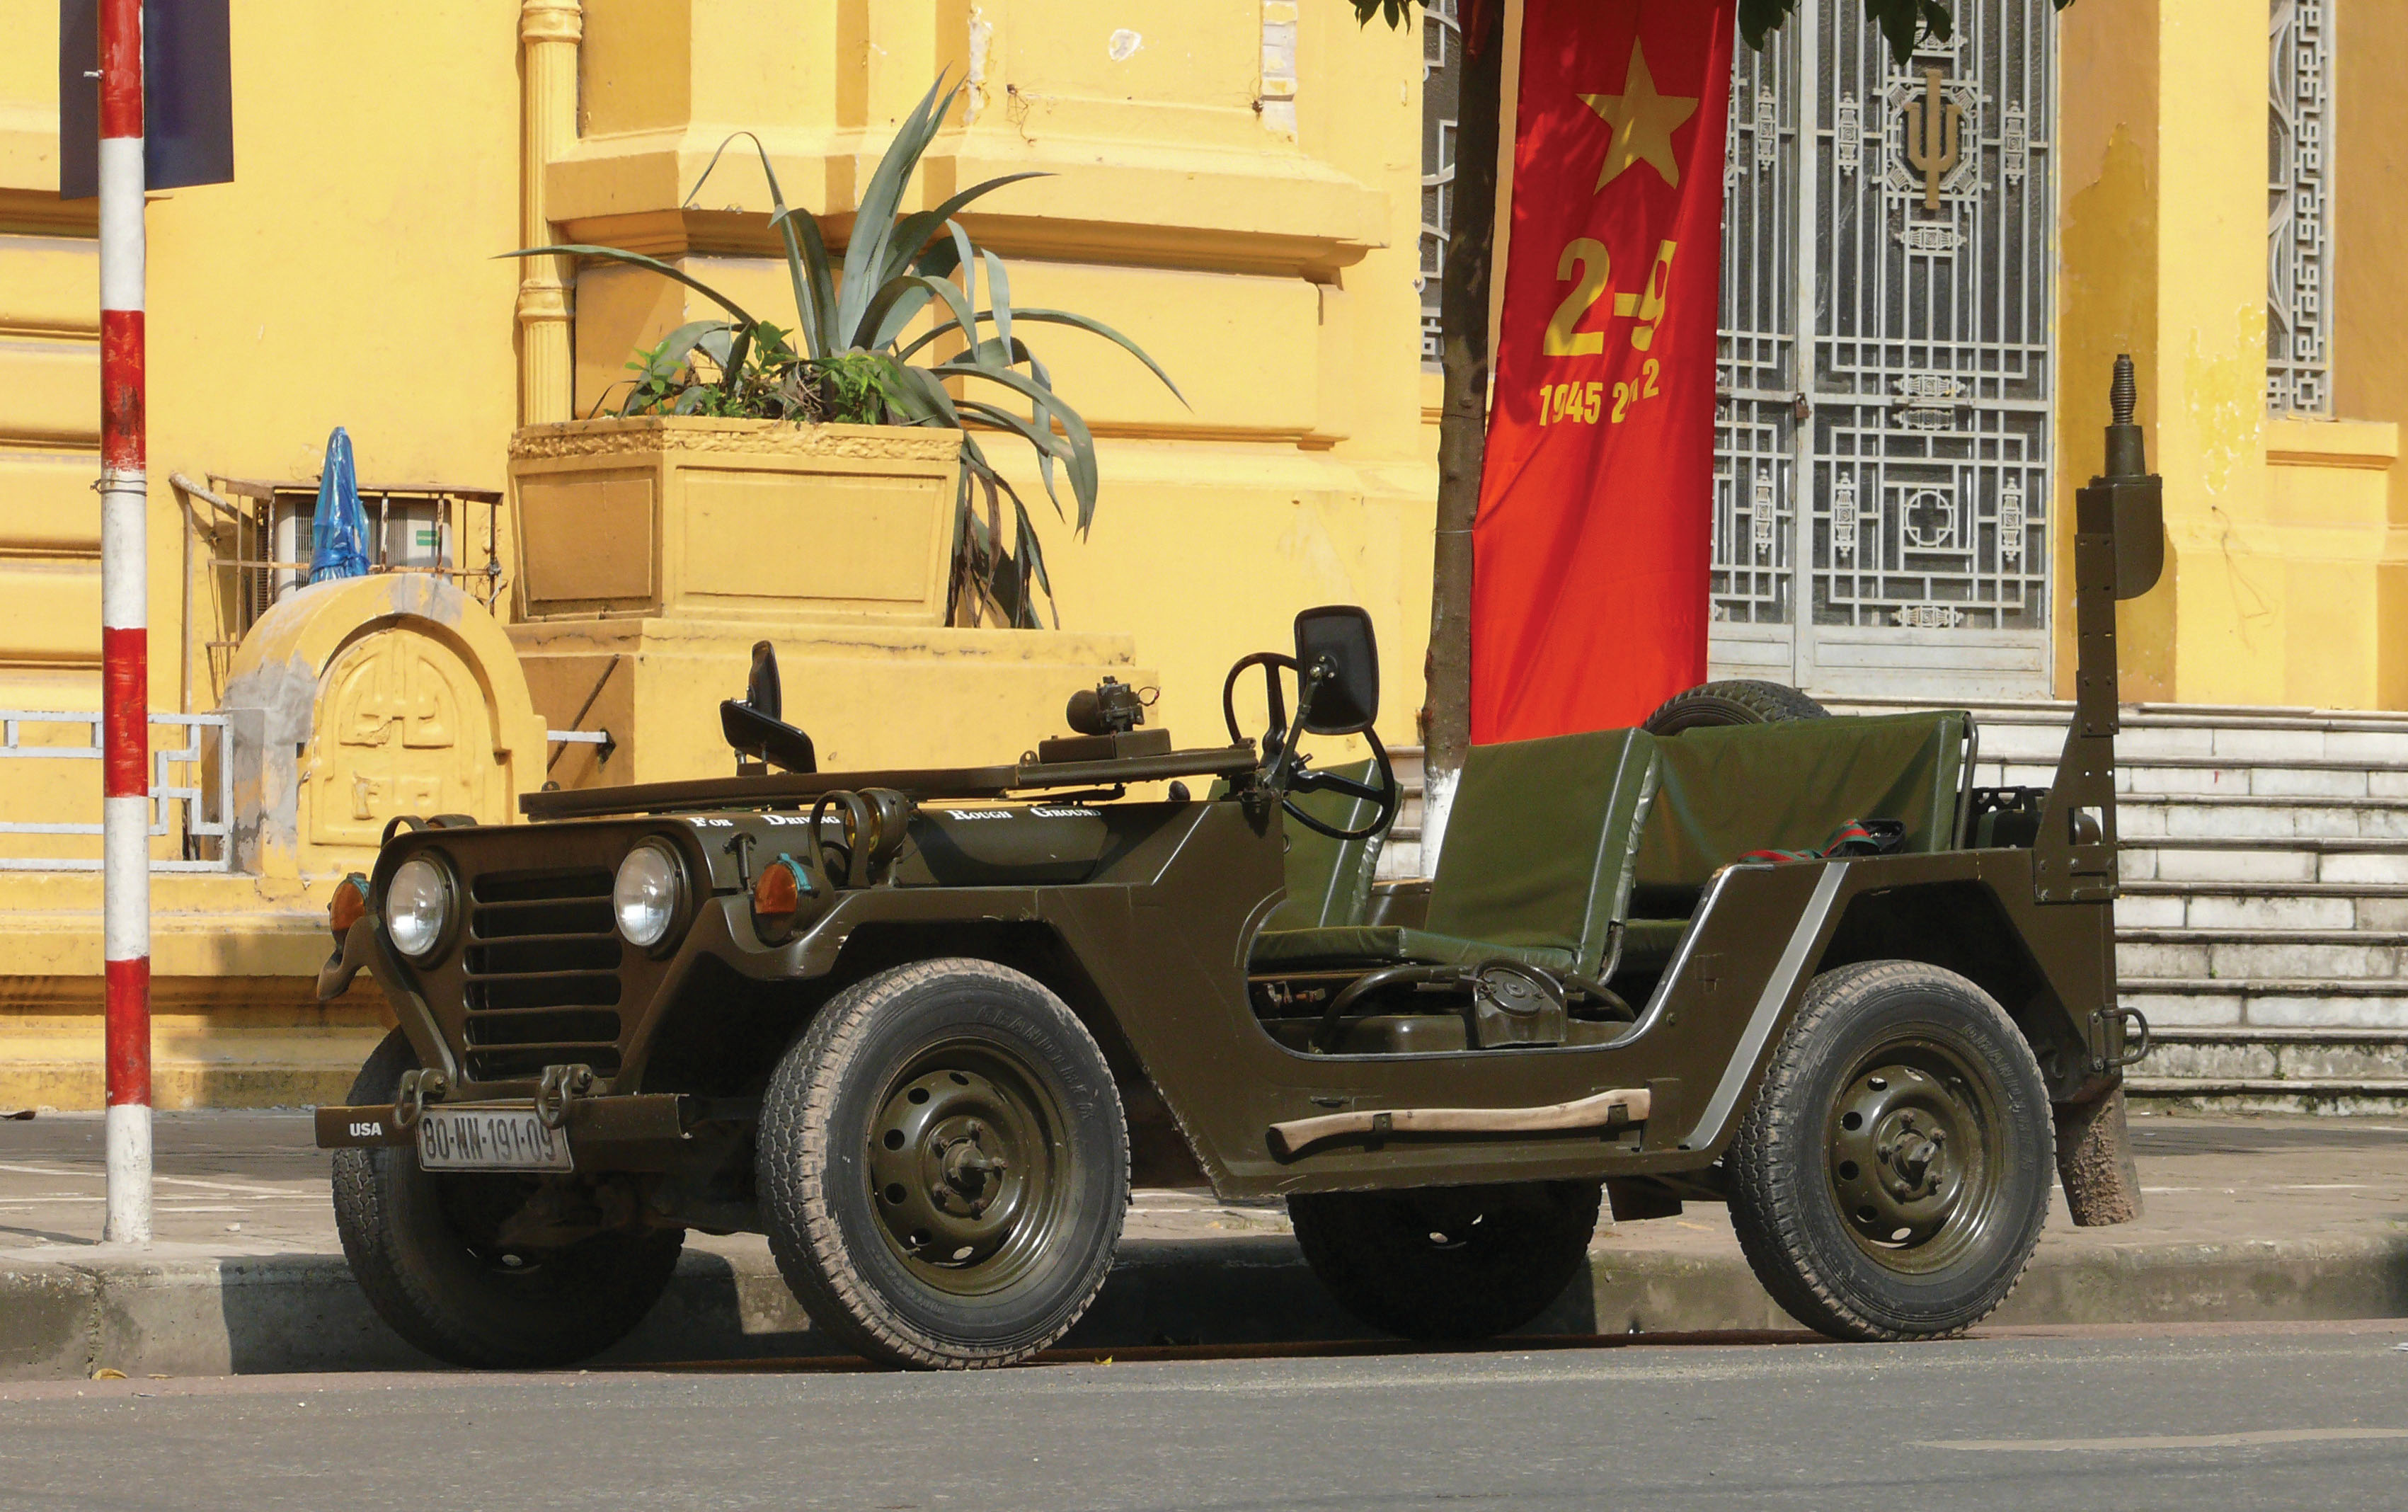 US Army Jeep MUTT: M151A2